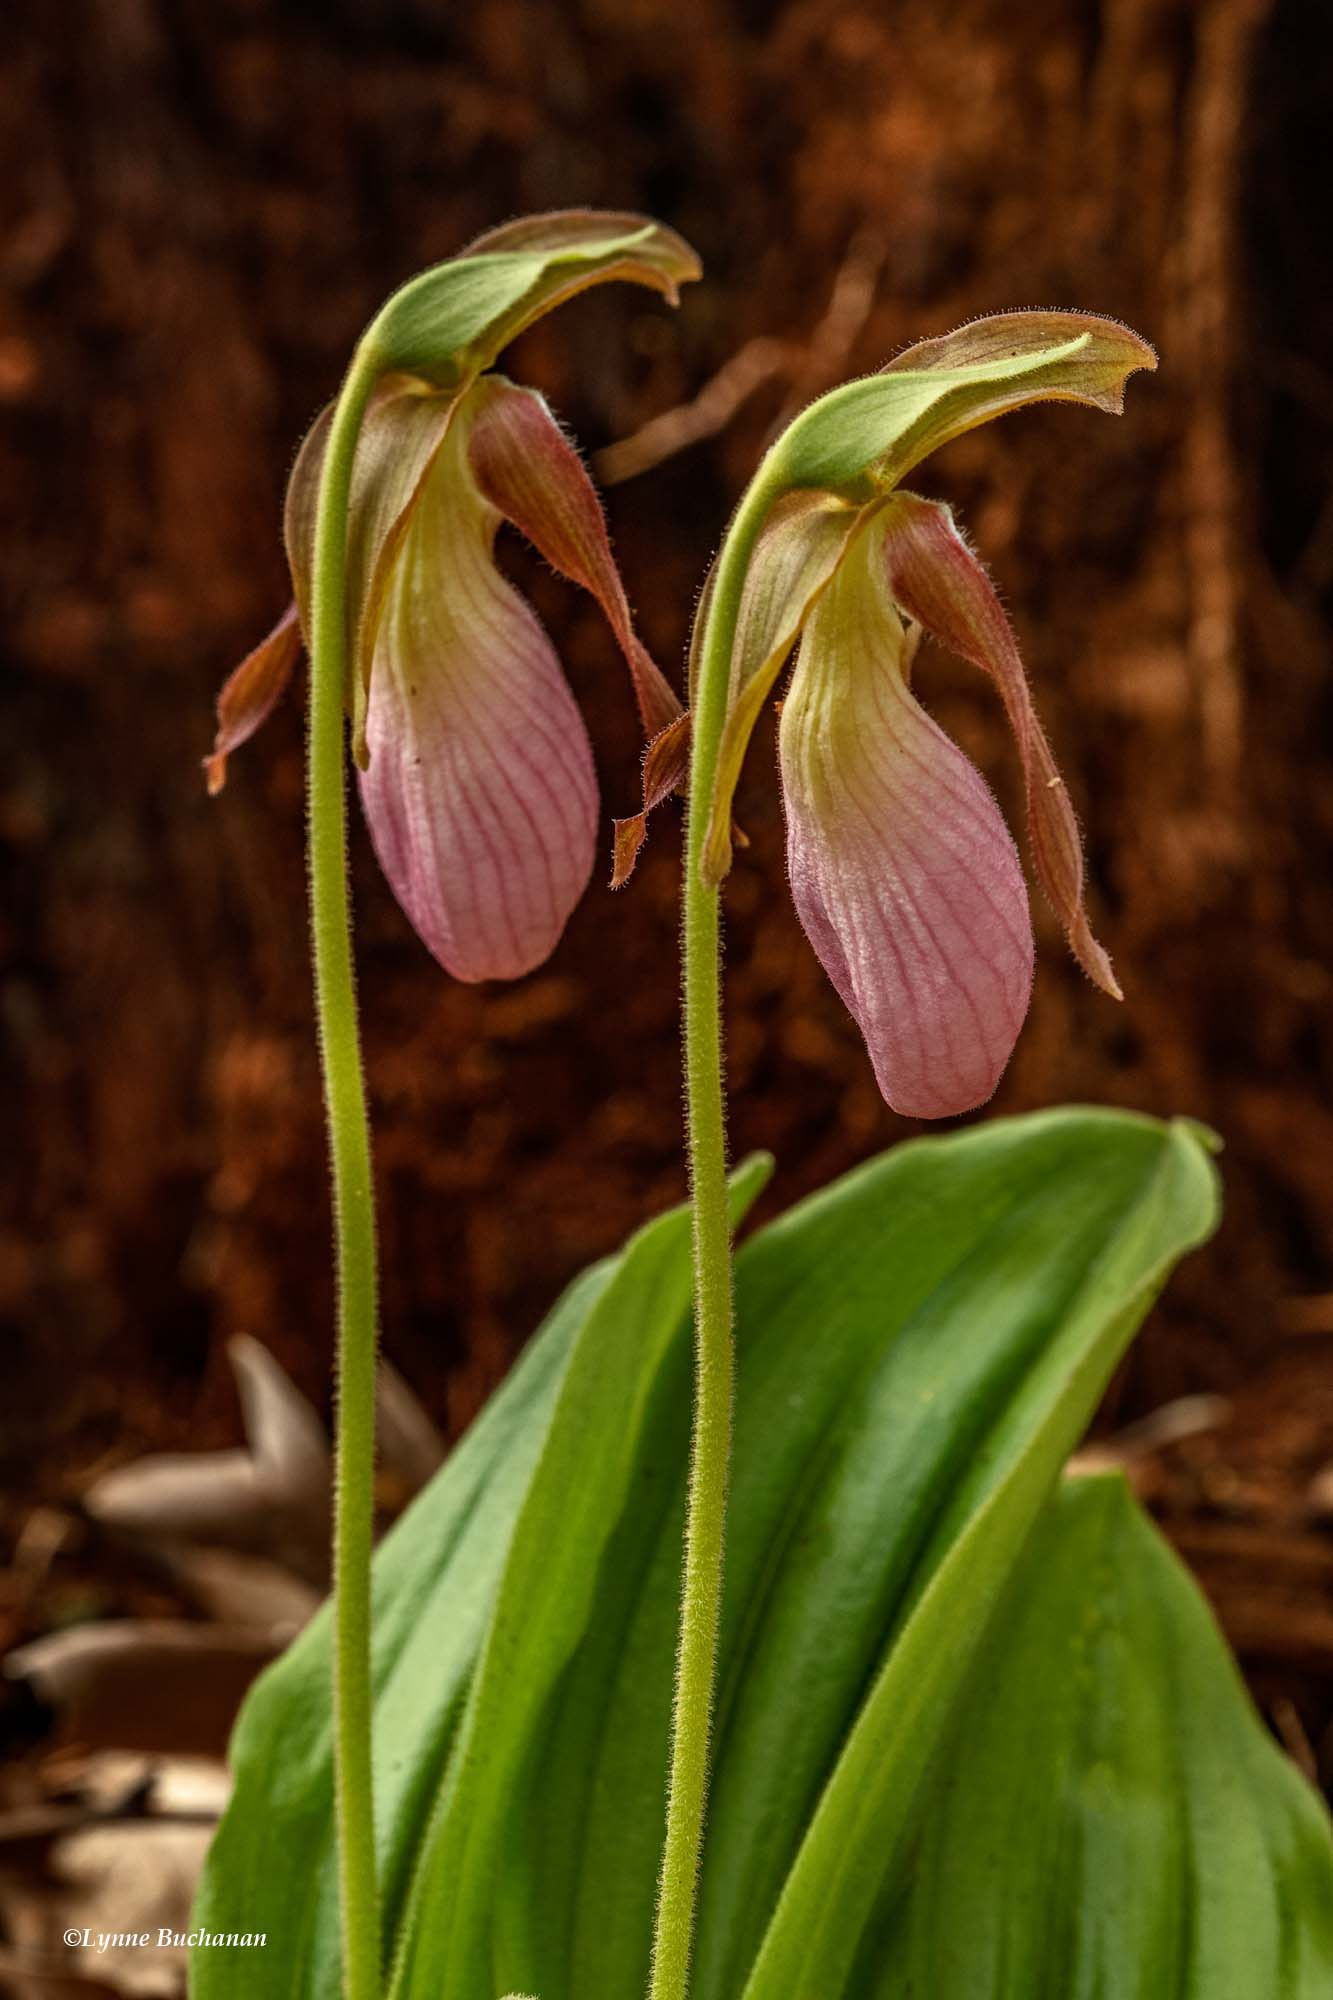 Pair of Lady Slippers Against a Stump